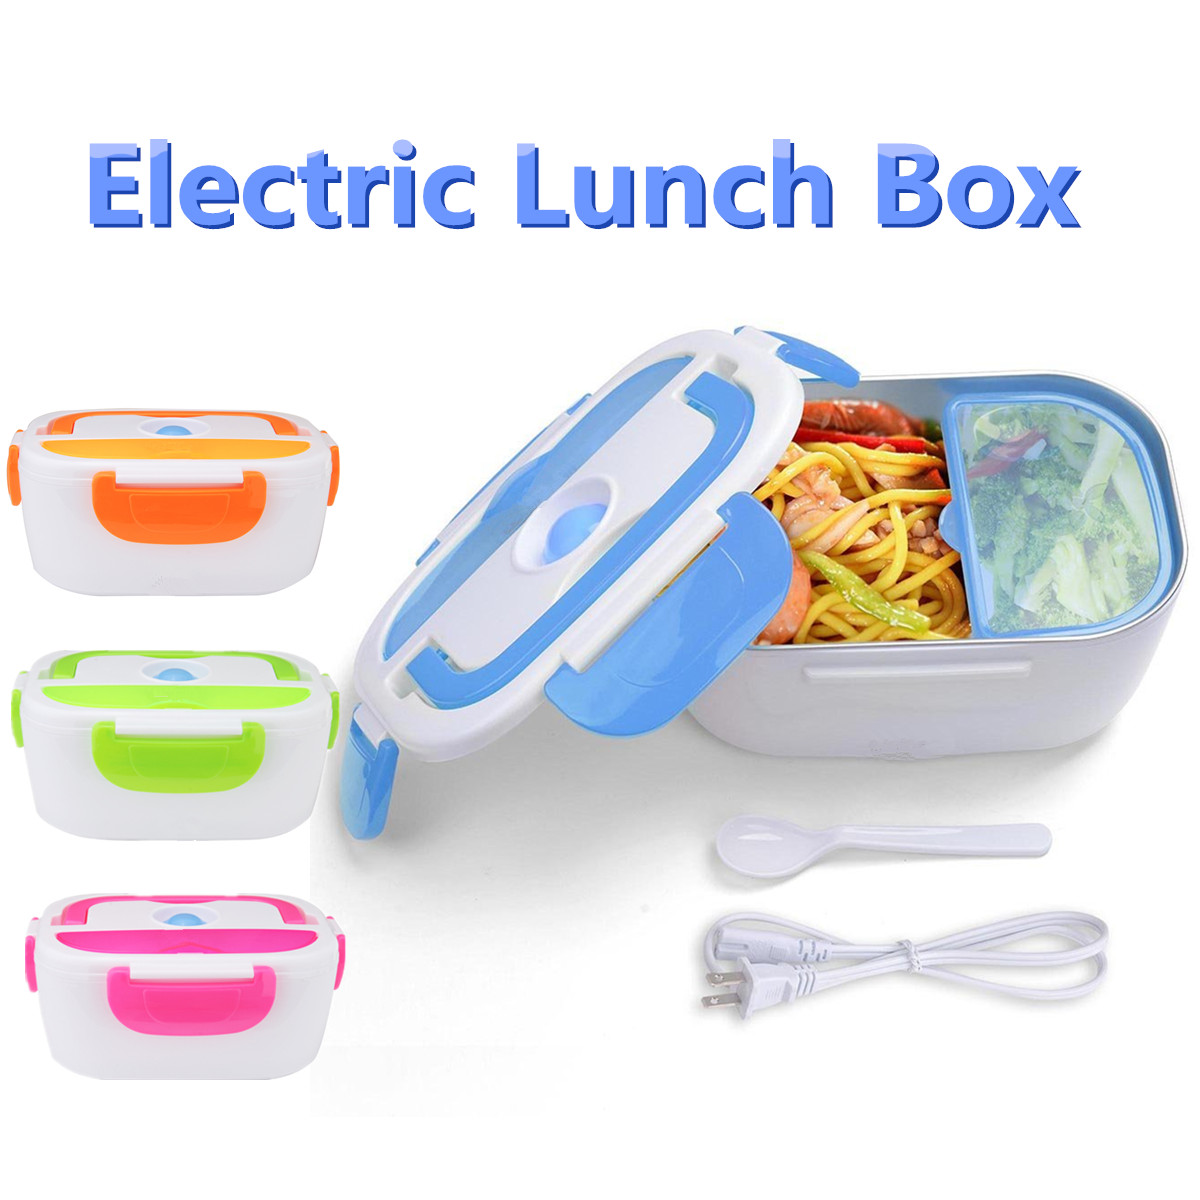 Portable Car Electric Lunch Box 1.5 L Food Storage Container Heater Food Warmer Hot Rice Cooker Traveling Meal Heater 40W 110V portable 12v car electric heating lunch box rice cooker food warmer 1 05l 40w